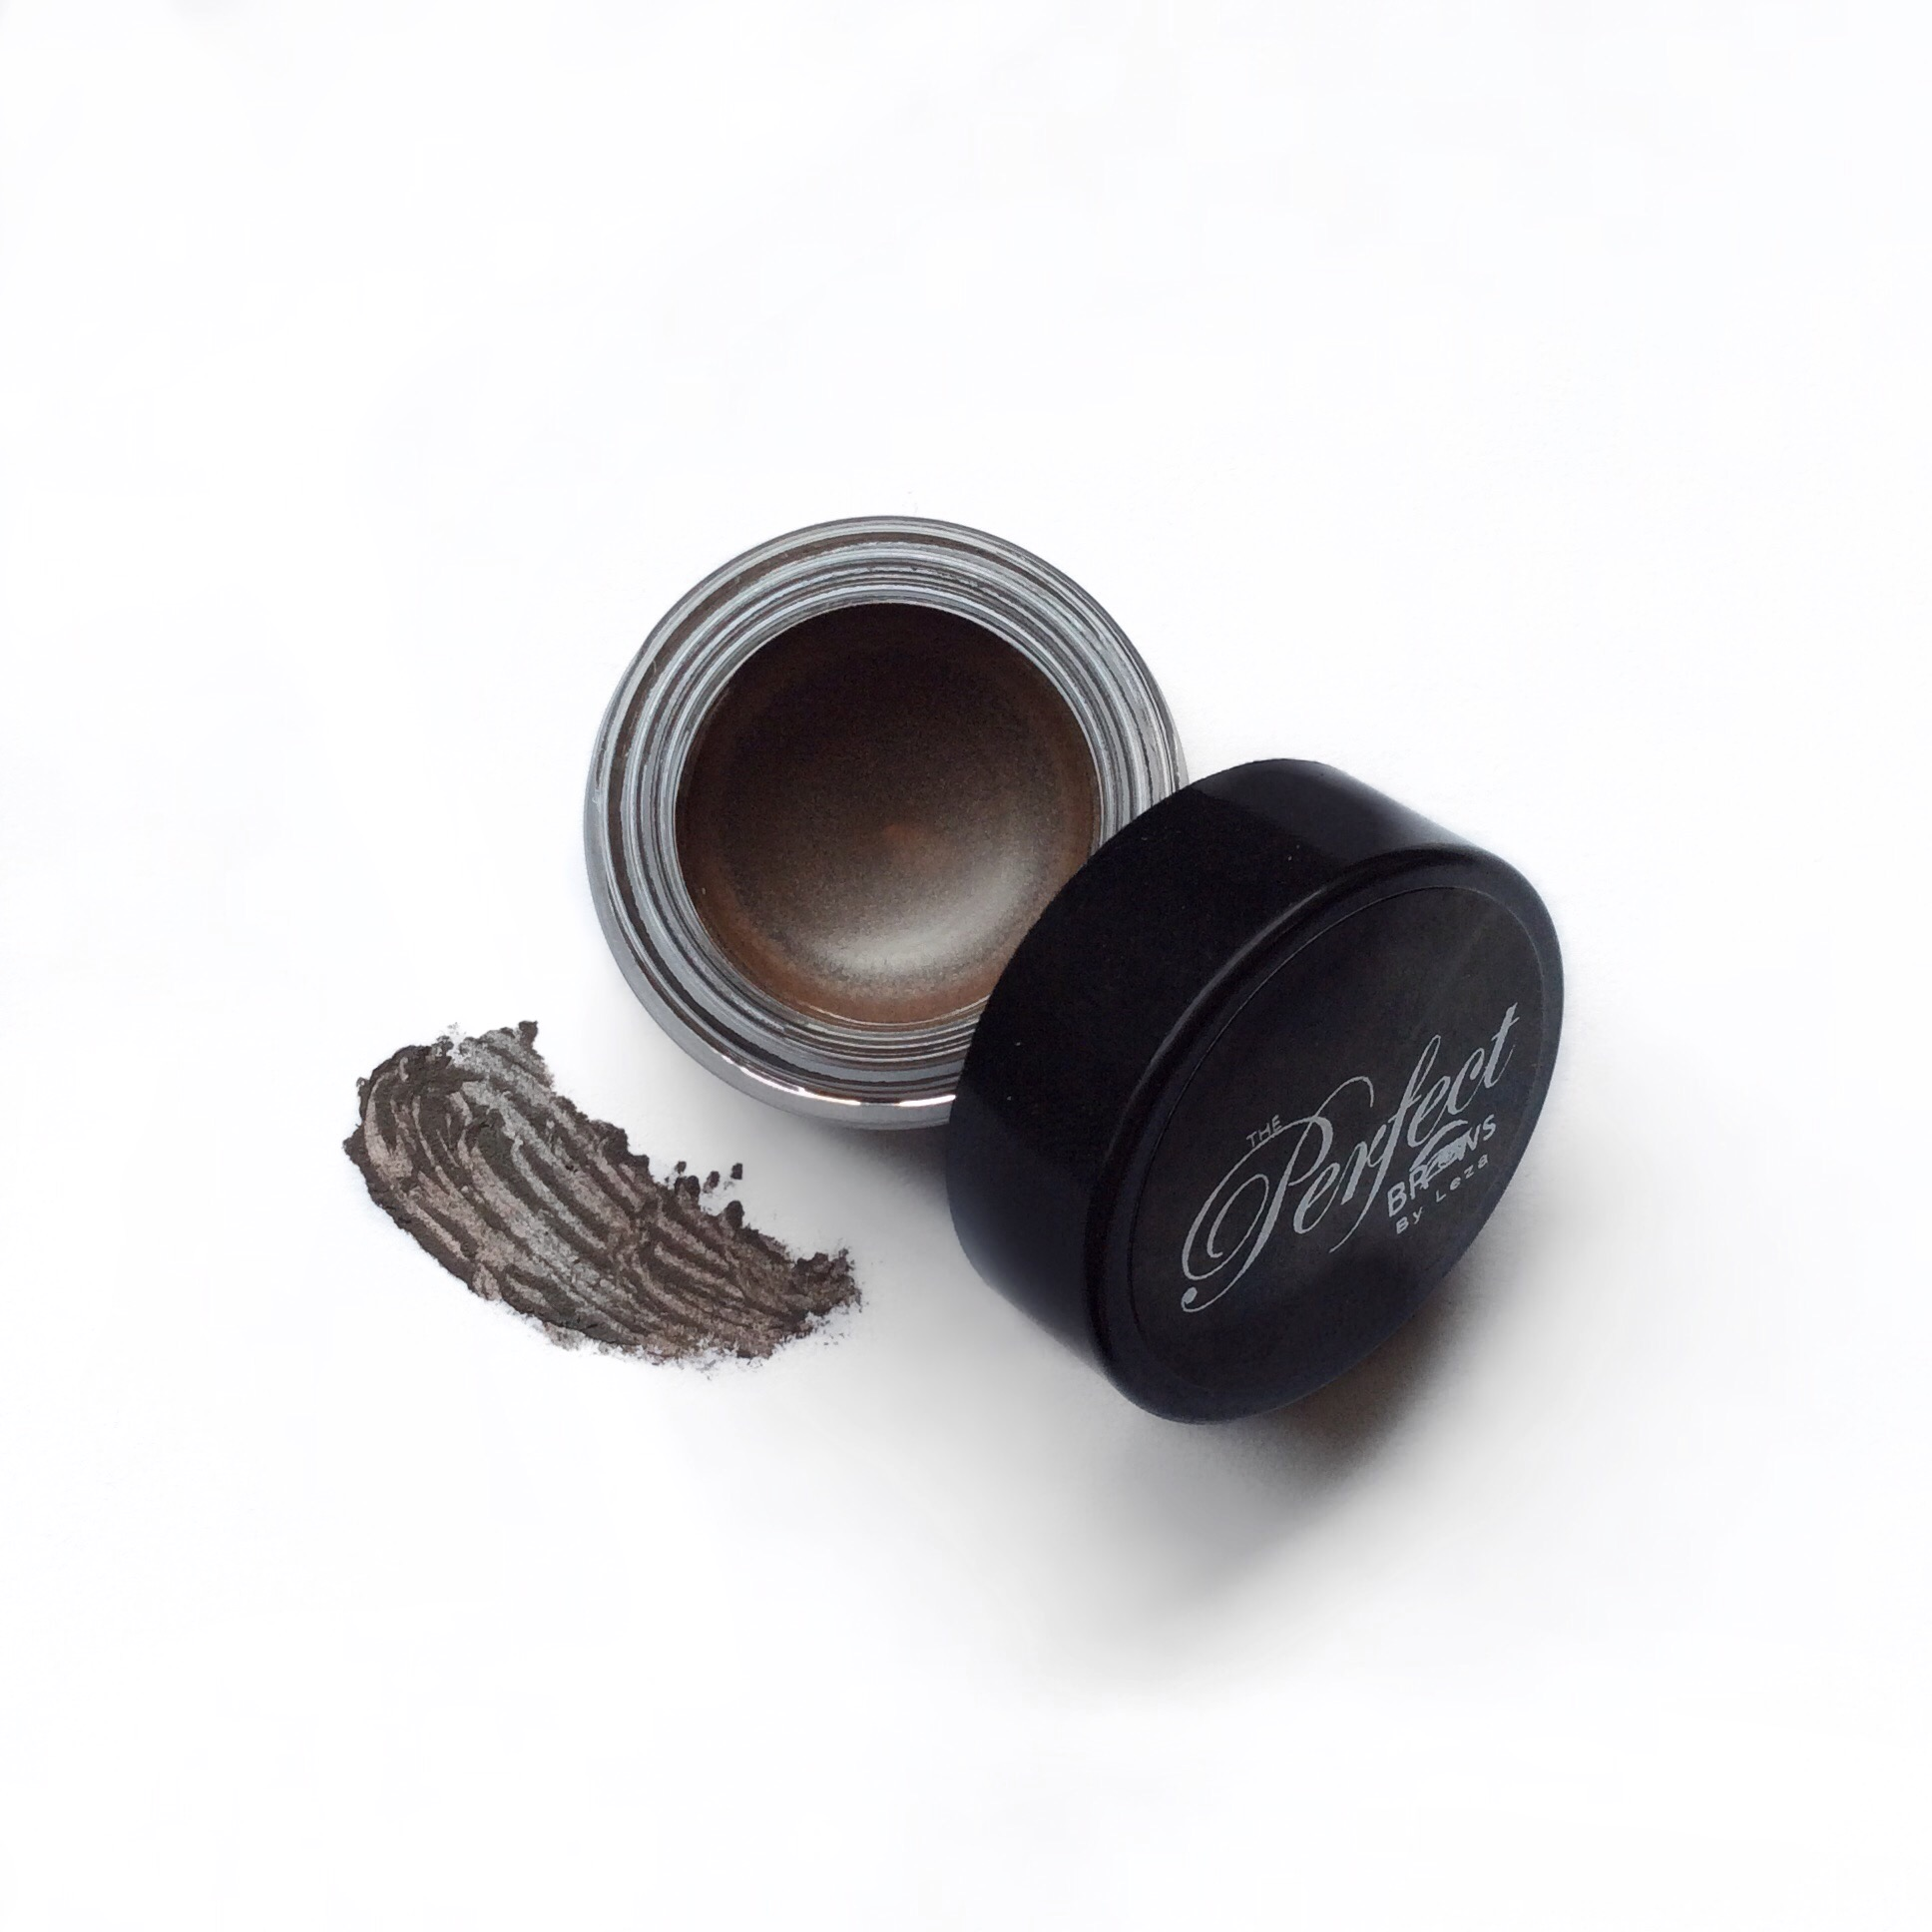 Waterproof Gel Brow Liner in Brown